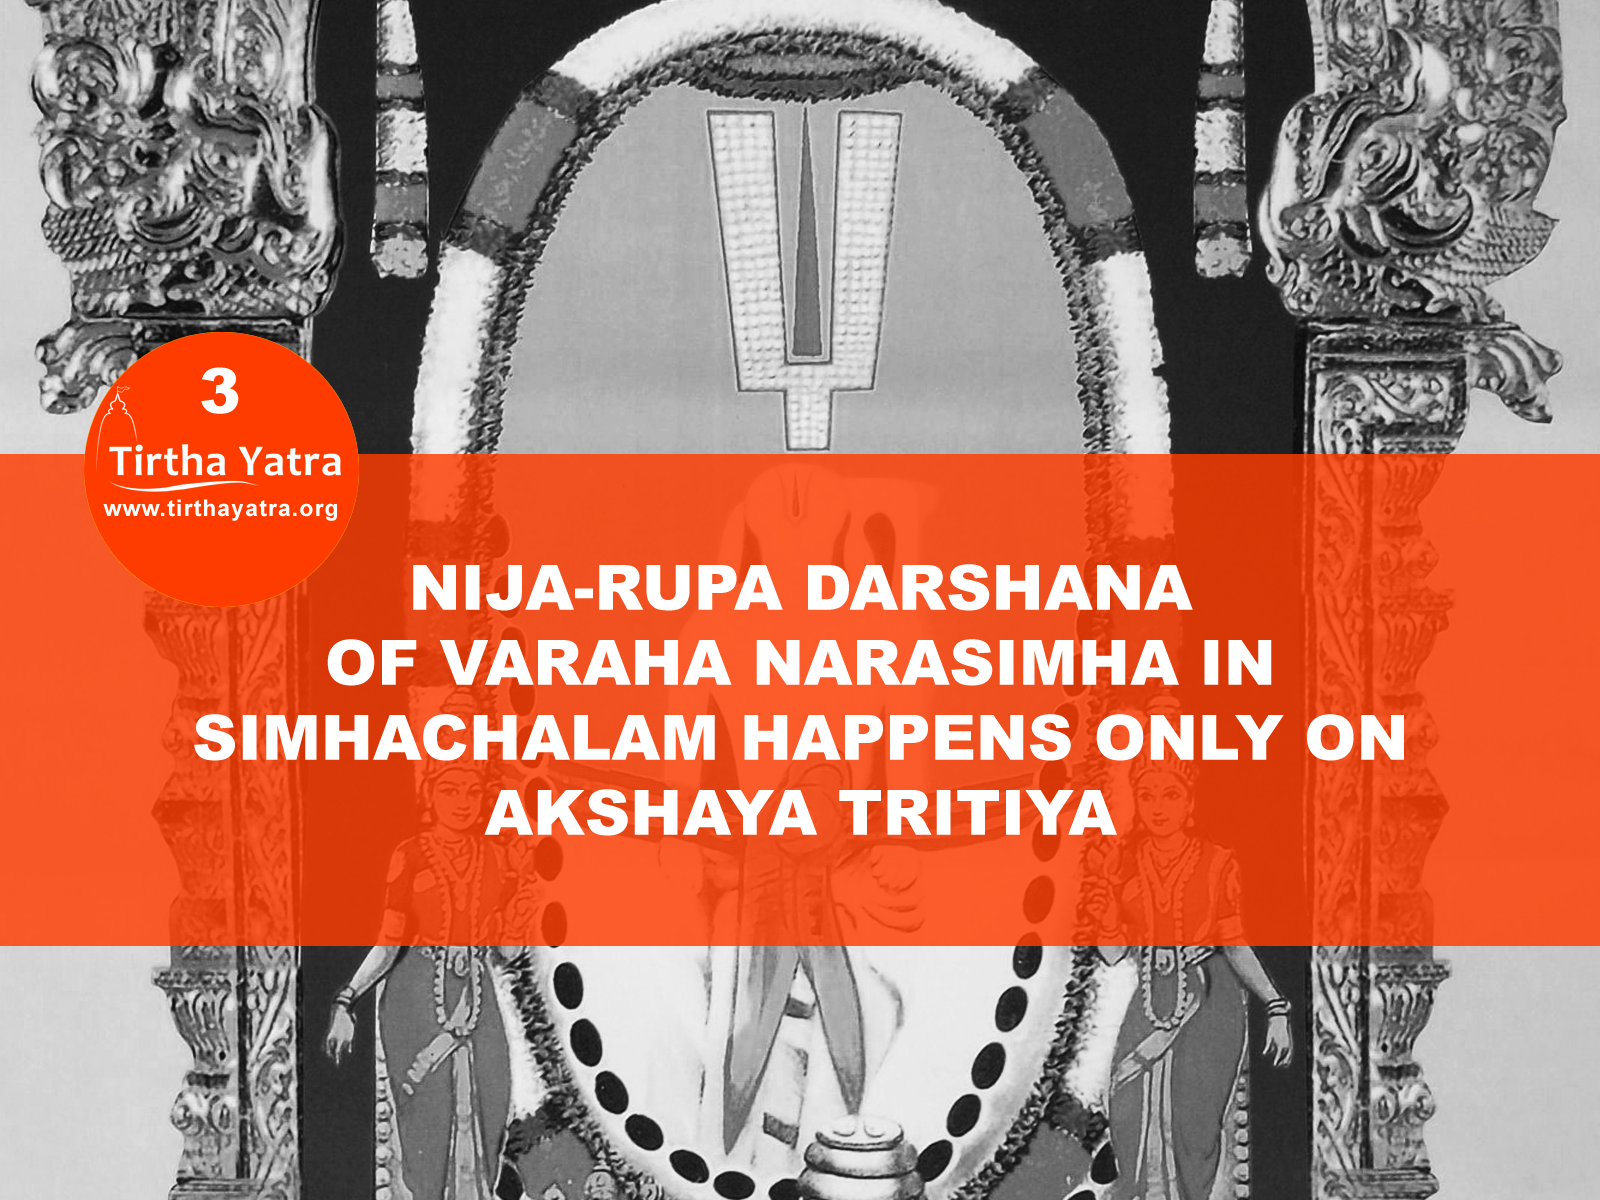 Nija Rupa darshana in Simhachalam on Akshaya Tritiya